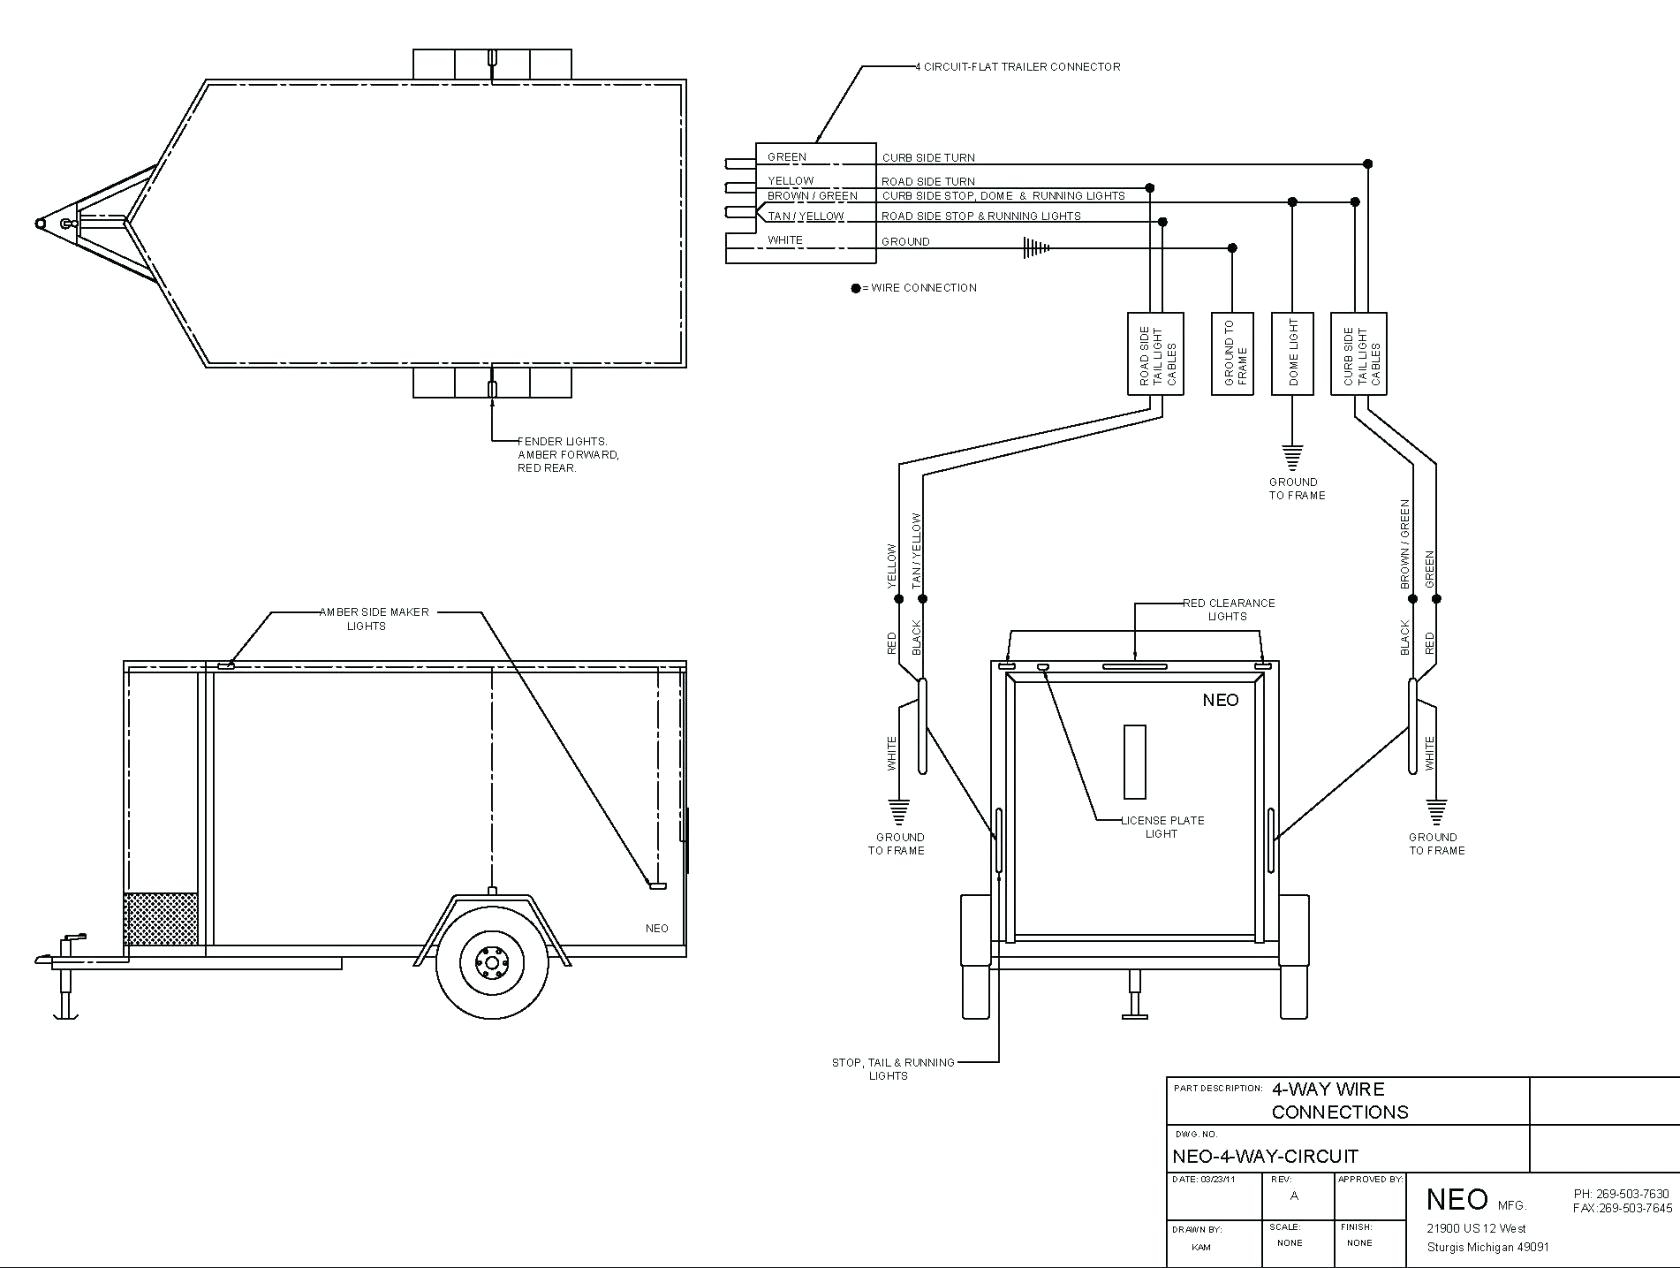 R Amp Trailer Wiring Diagram on mitsubishi infinity radio, infinity gold, connecting 6 speakers 4 channel, nissan bose, kicker 4 channel, for car,